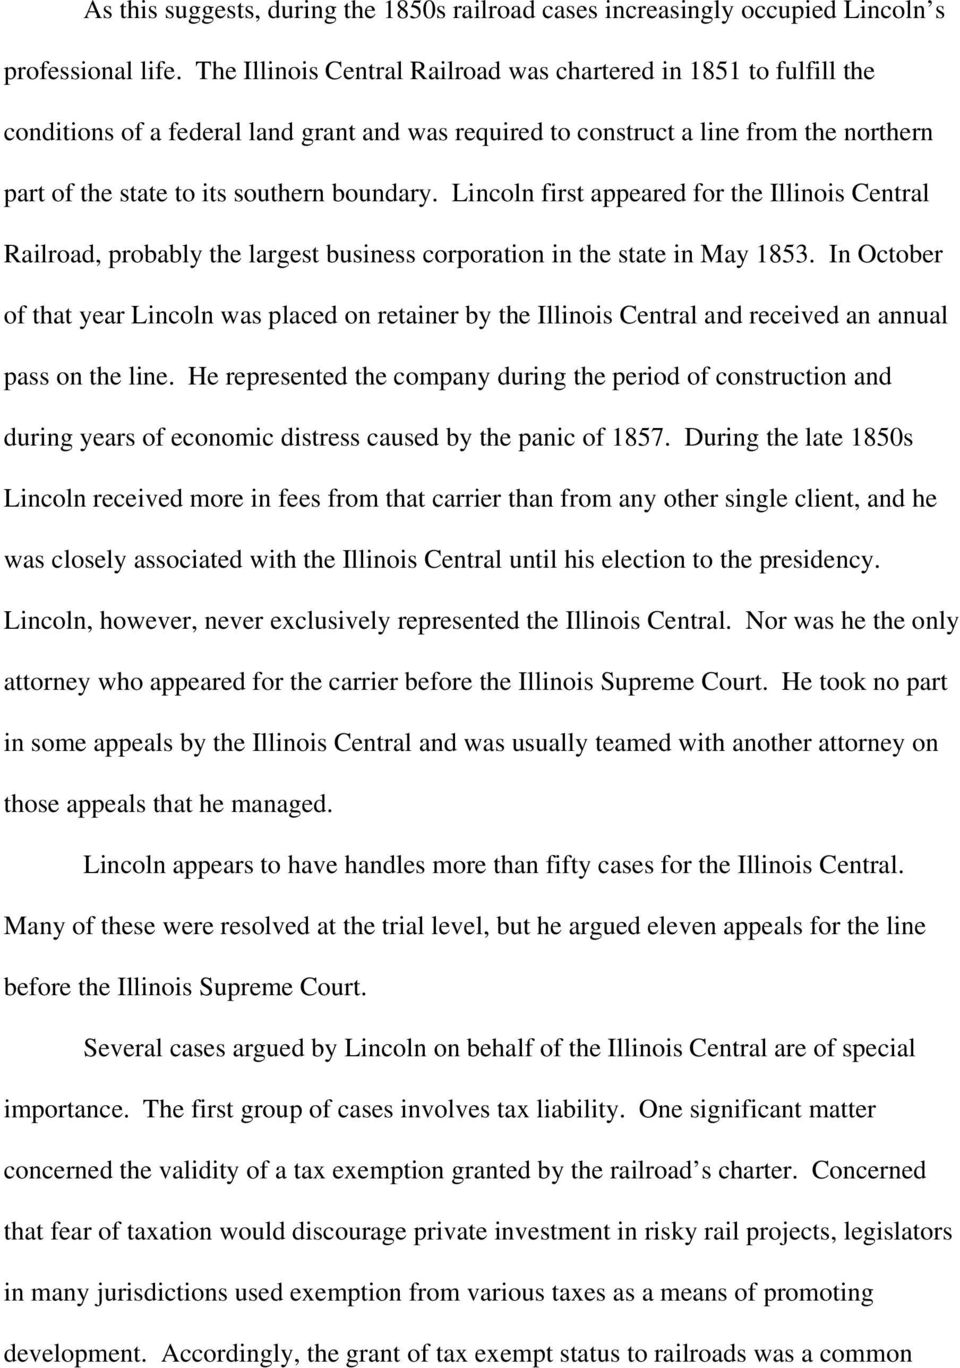 Lincoln first appeared for the Illinois Central Railroad, probably the largest business corporation in the state in May 1853.